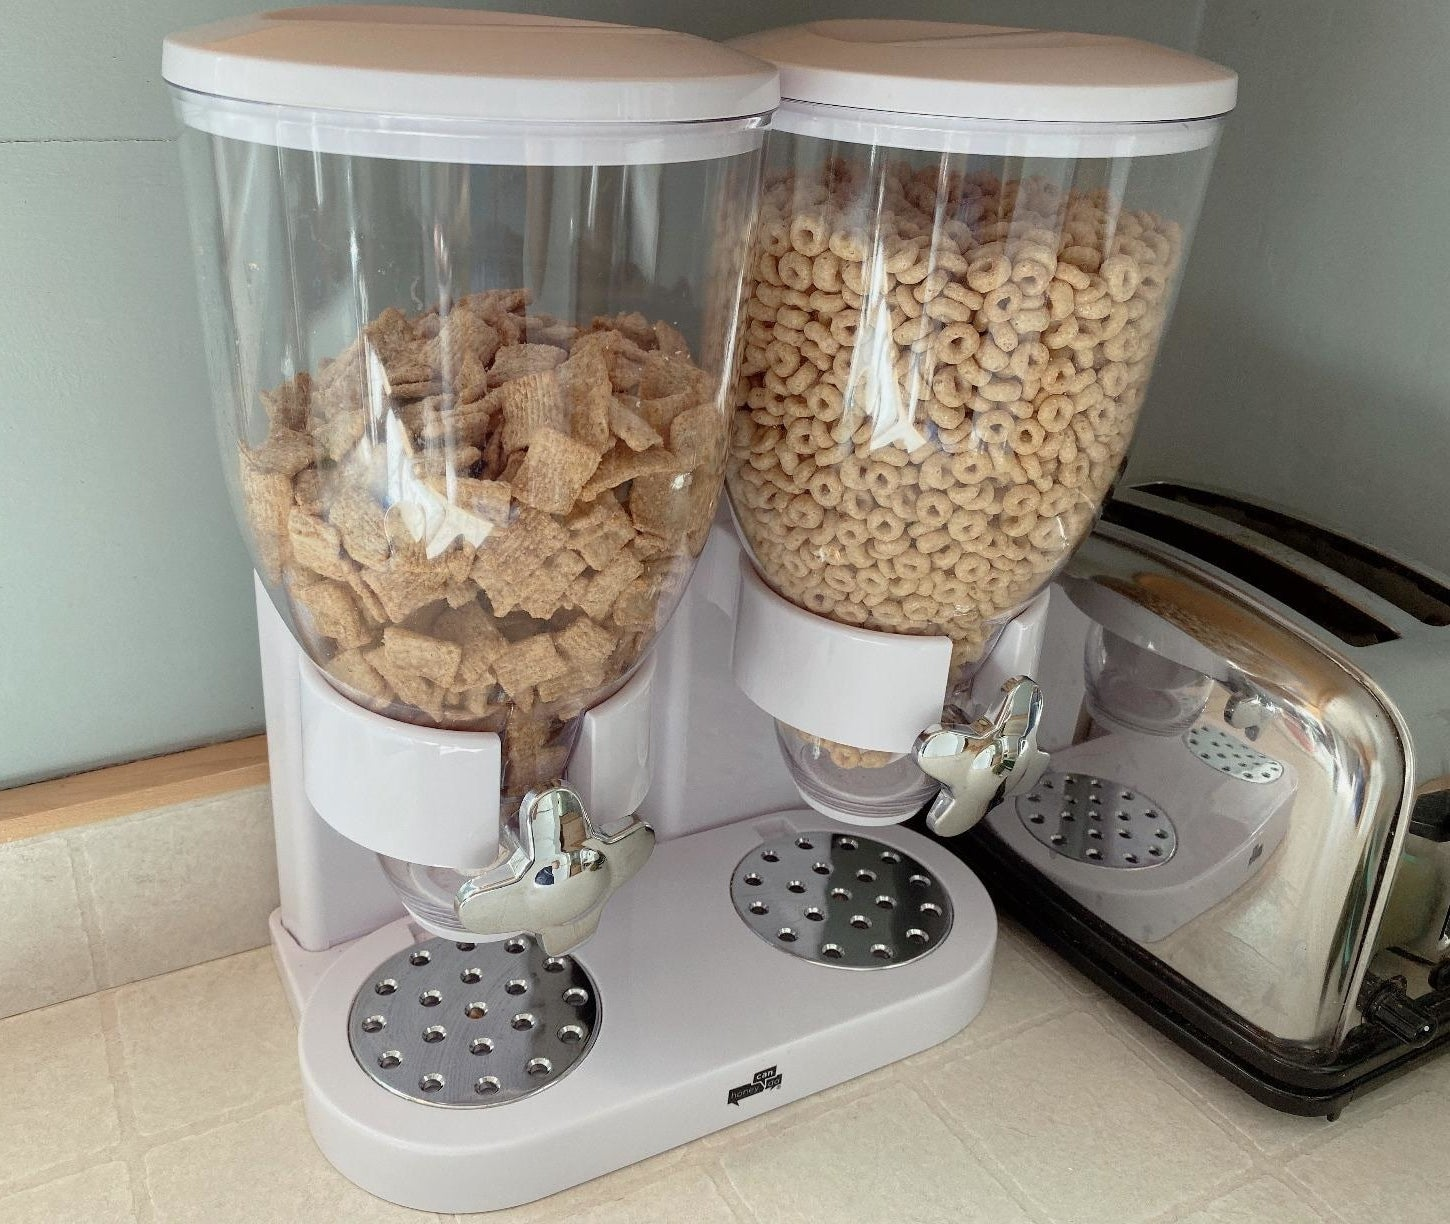 The cereal dispenser holding two kinds of cereal